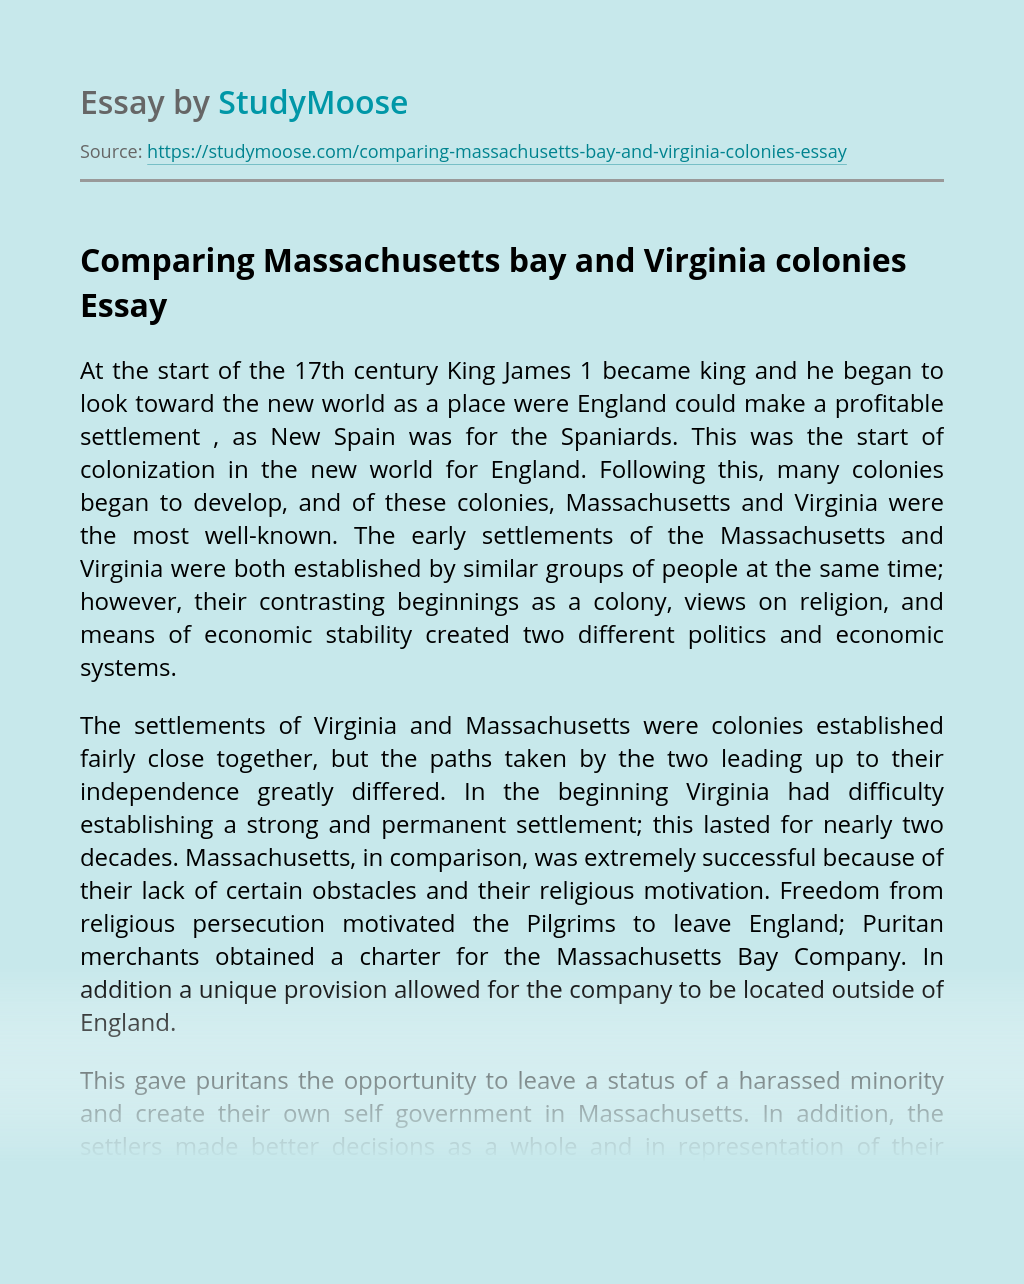 Comparing Massachusetts bay and Virginia colonies